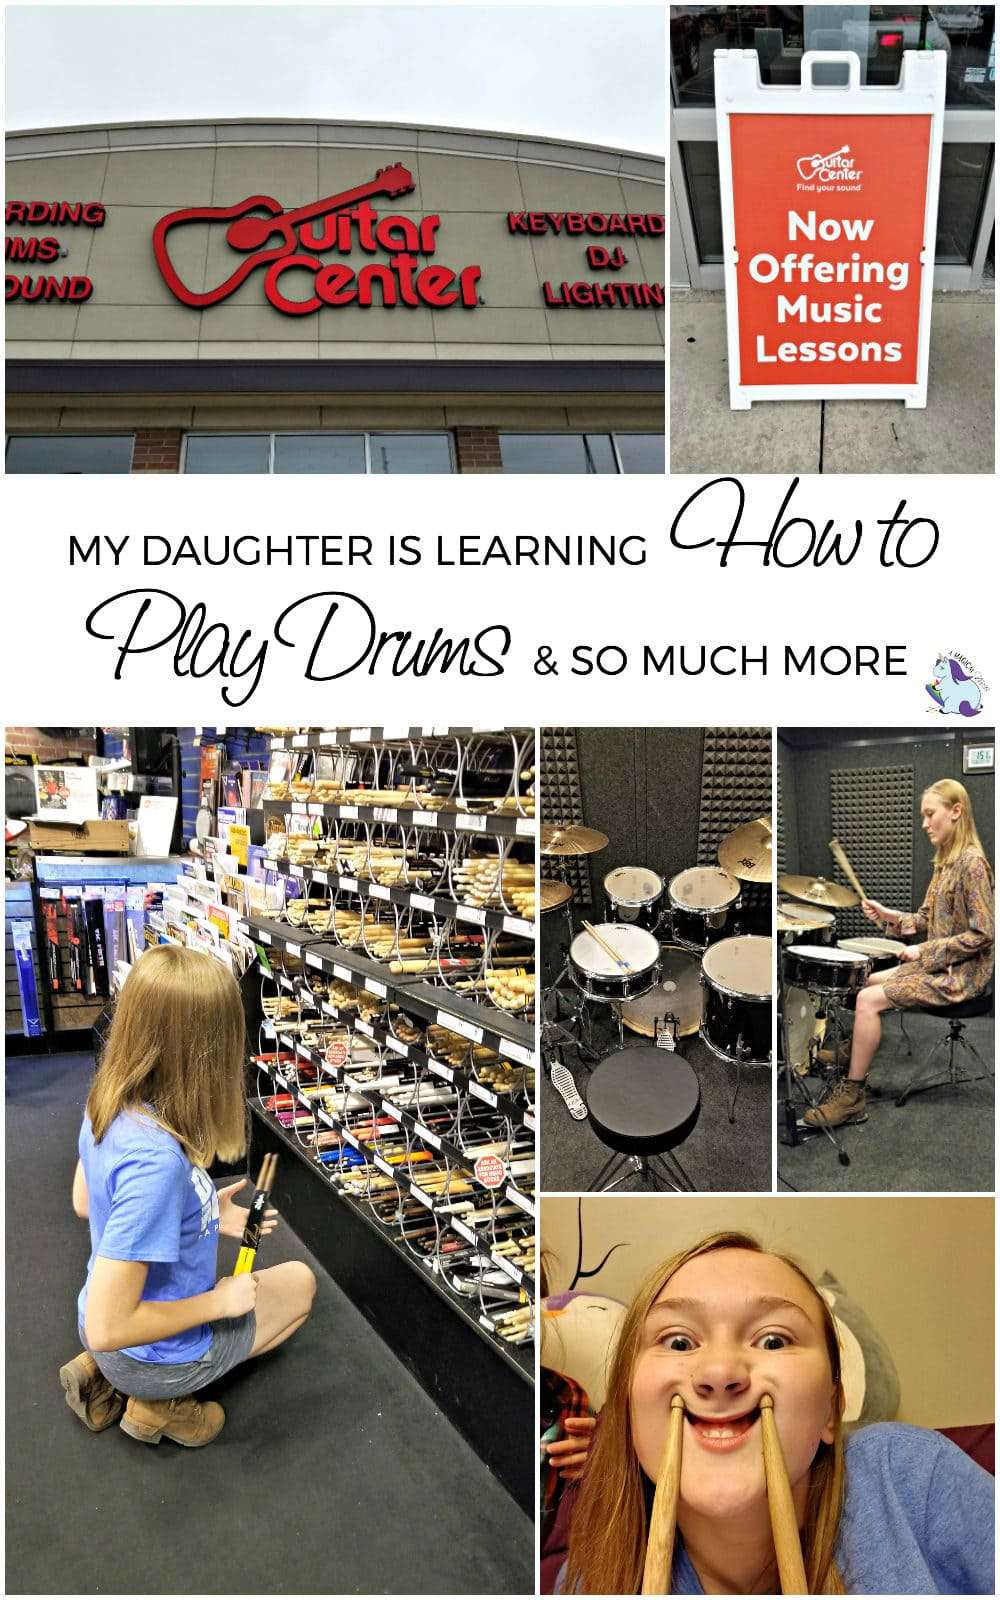 My Daughter is Learning How to Play Drums and So Much More #GuitarCenter AD